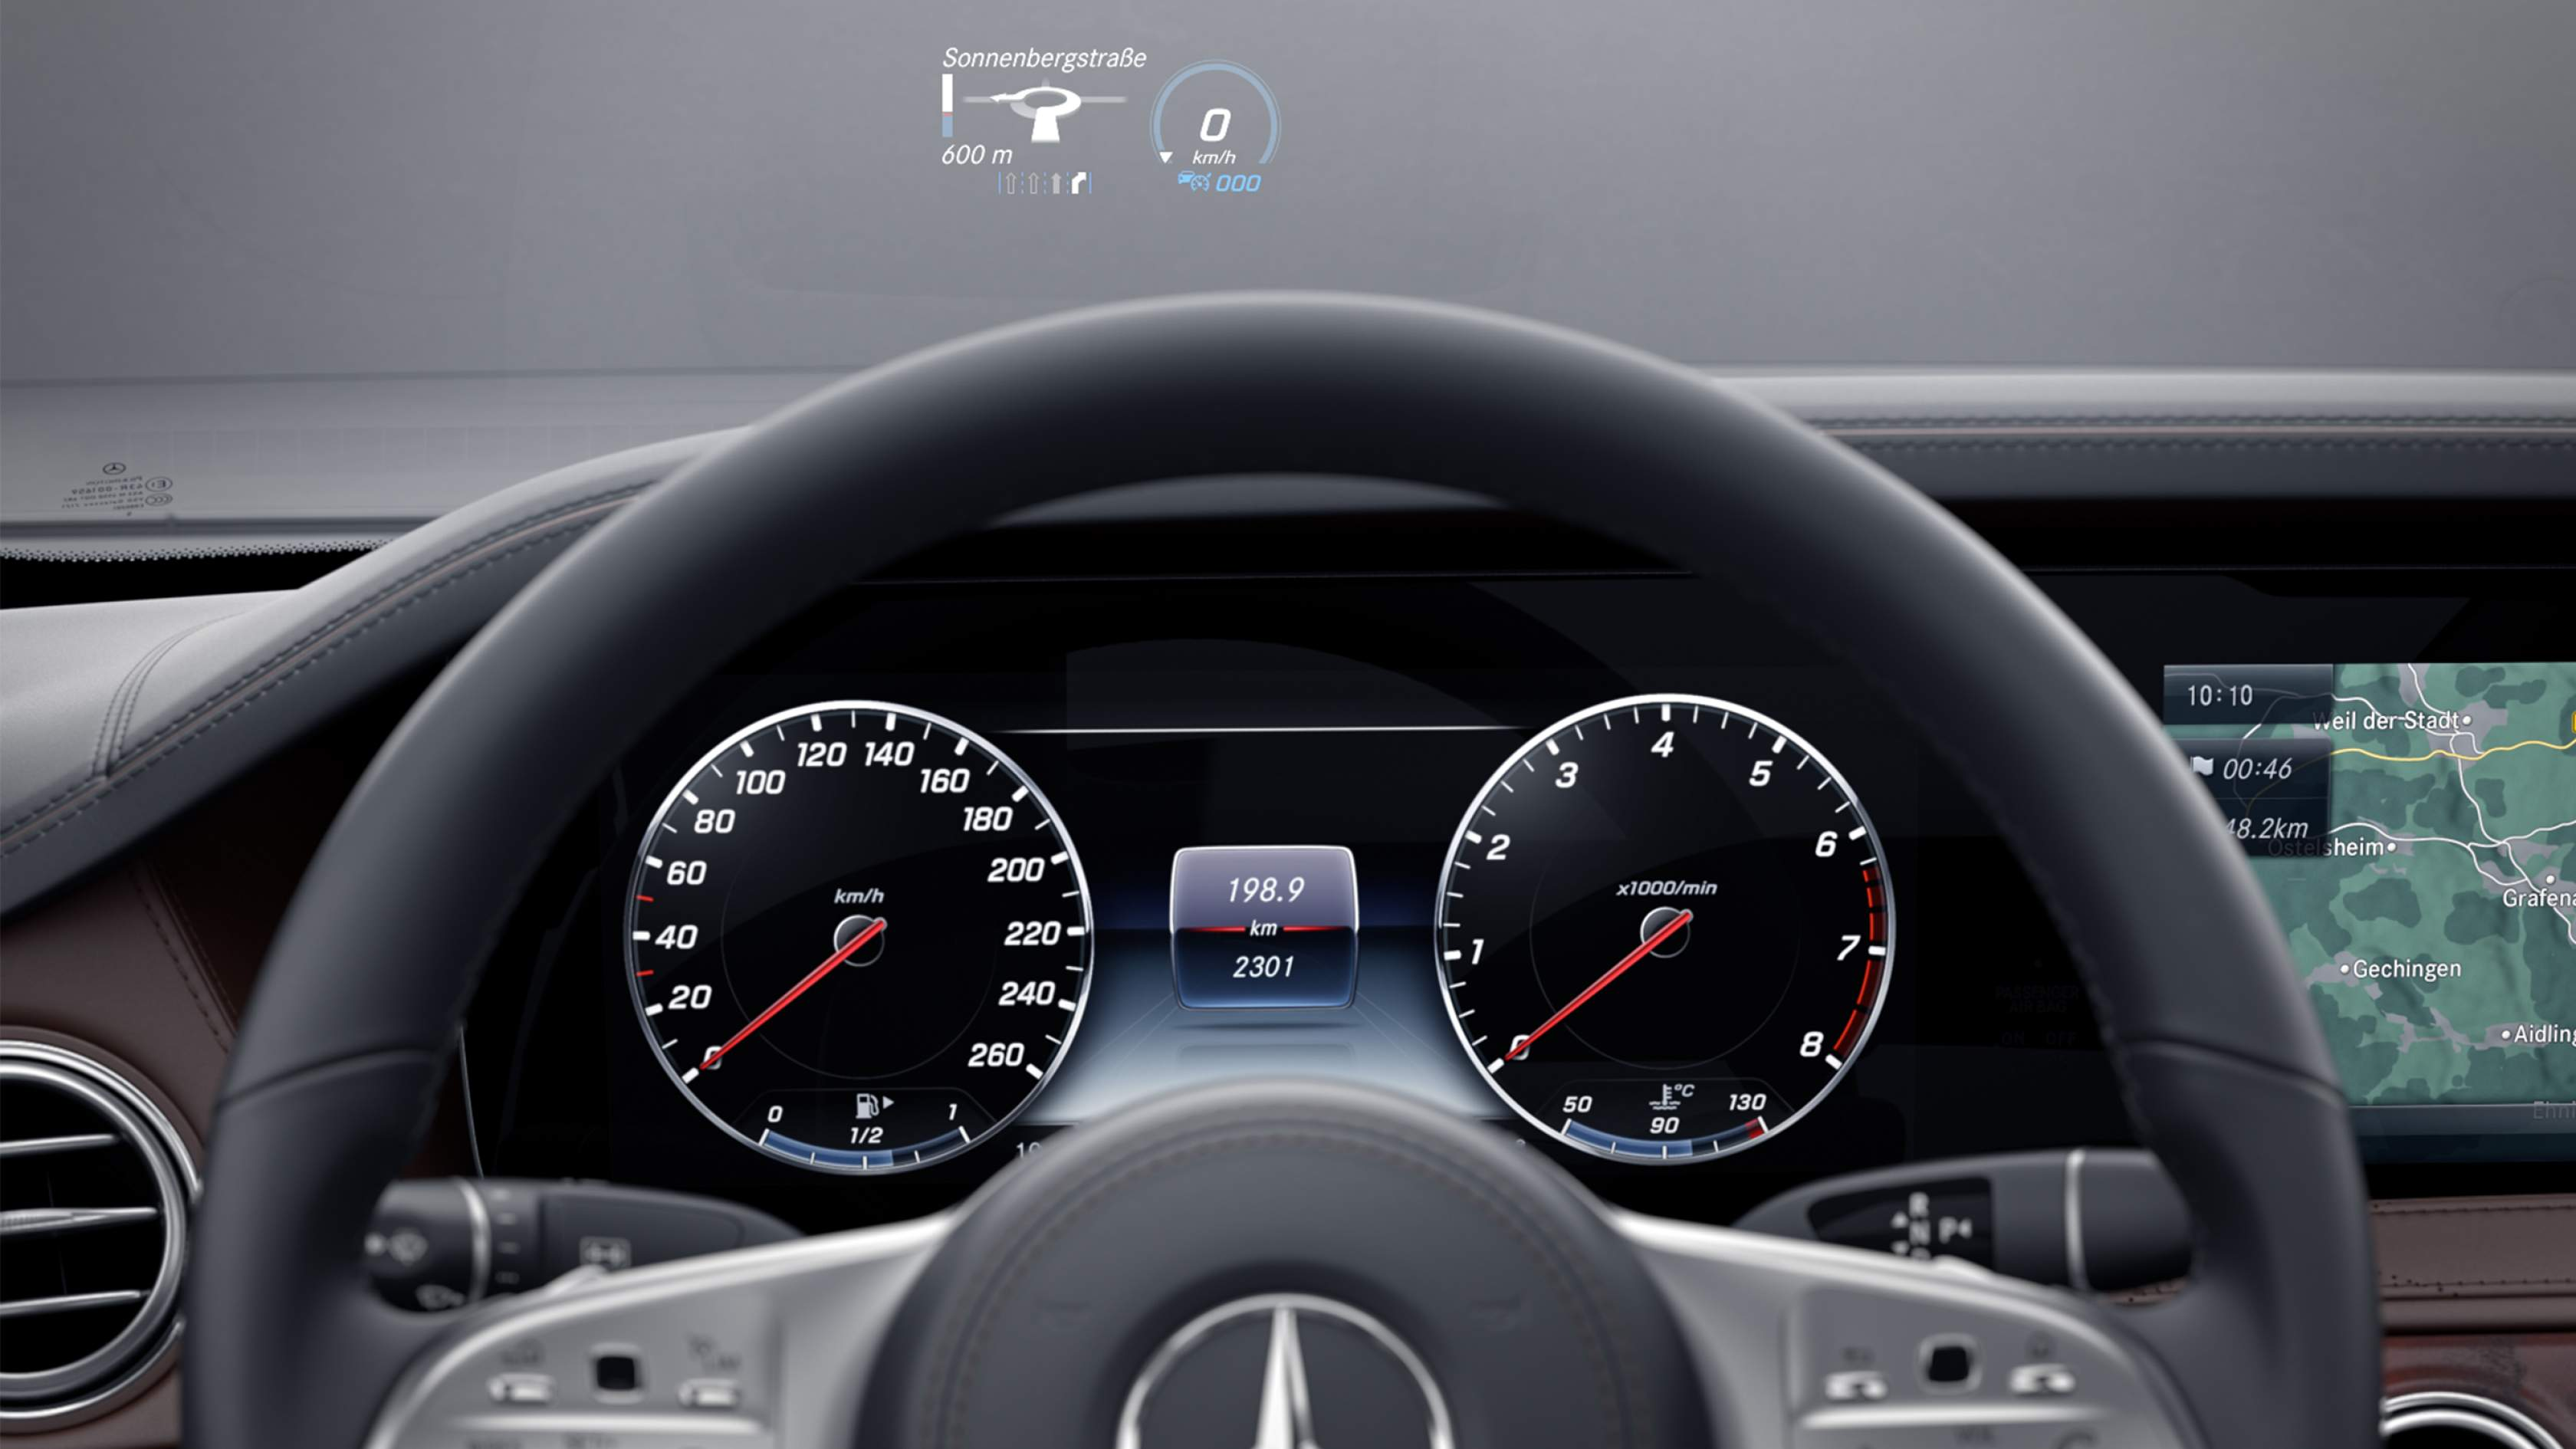 Mercedes-Benz Intelligent Drive Mercedes-Maybach